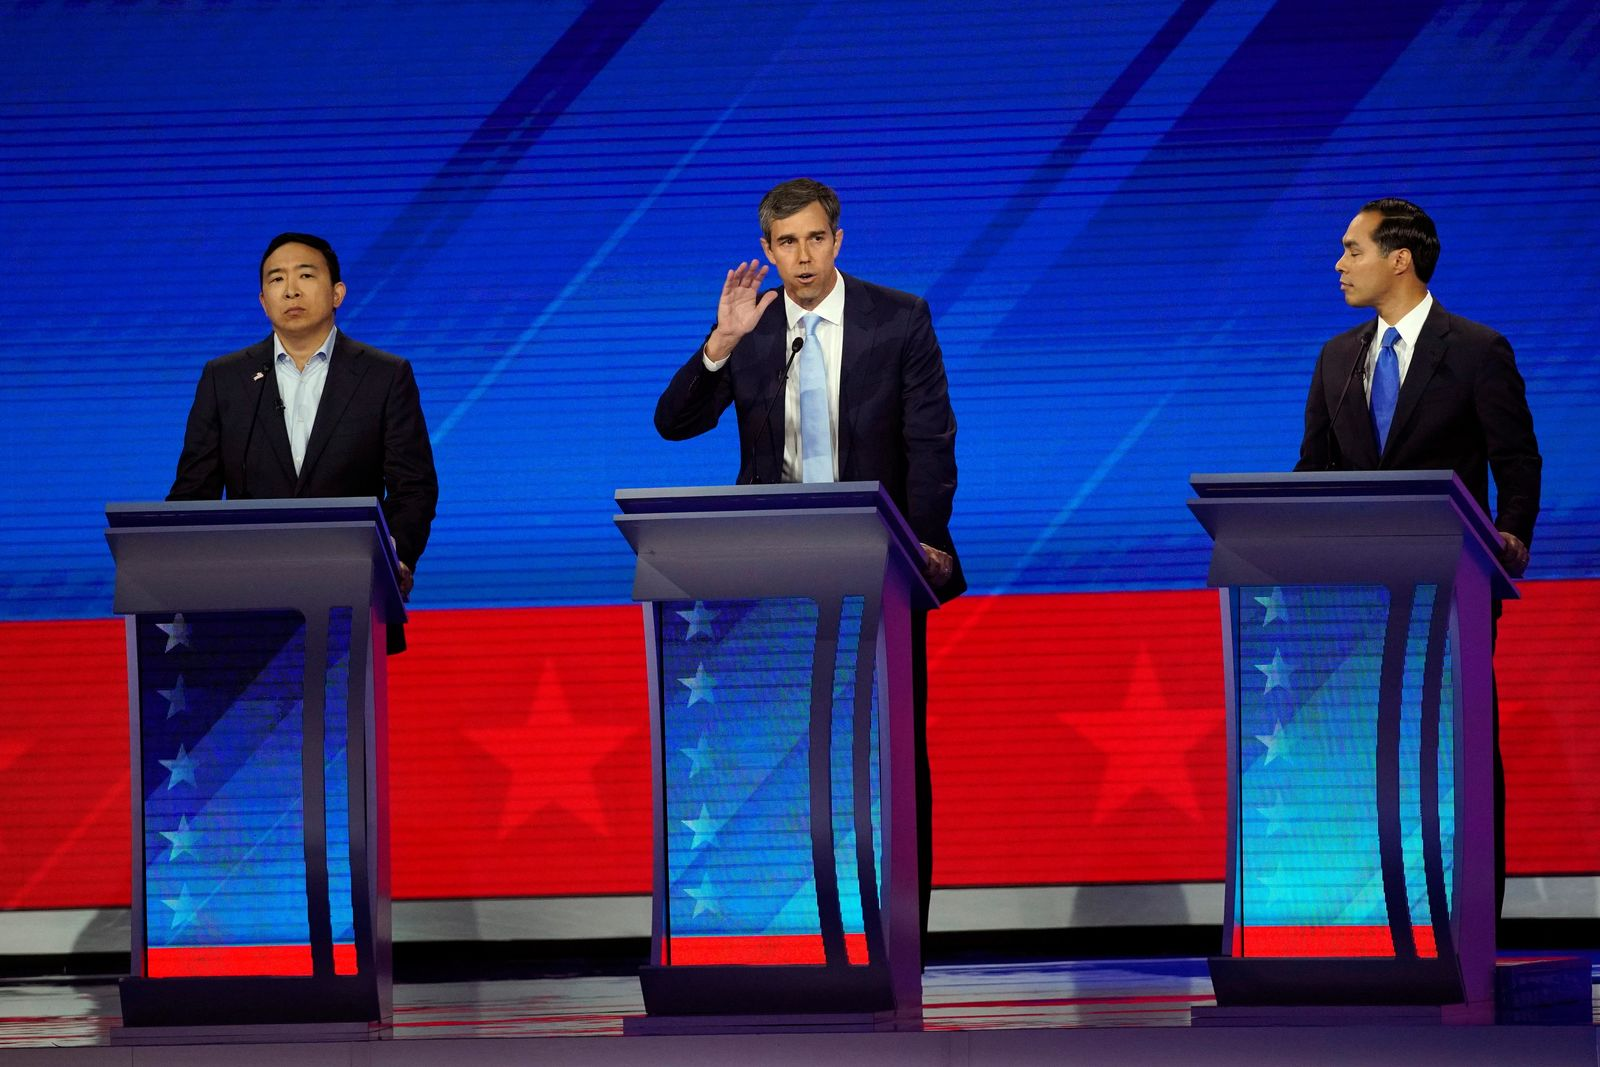 Andrew Yang, left, and former Housing and Urban Development Secretary Julian Castro, right, listen to former Texas Rep. Beto O'Rourke, center, Thursday, Sept. 12, 2019, during a Democratic presidential primary debate hosted by ABC at Texas Southern University in Houston. (AP Photo/David J. Phillip)